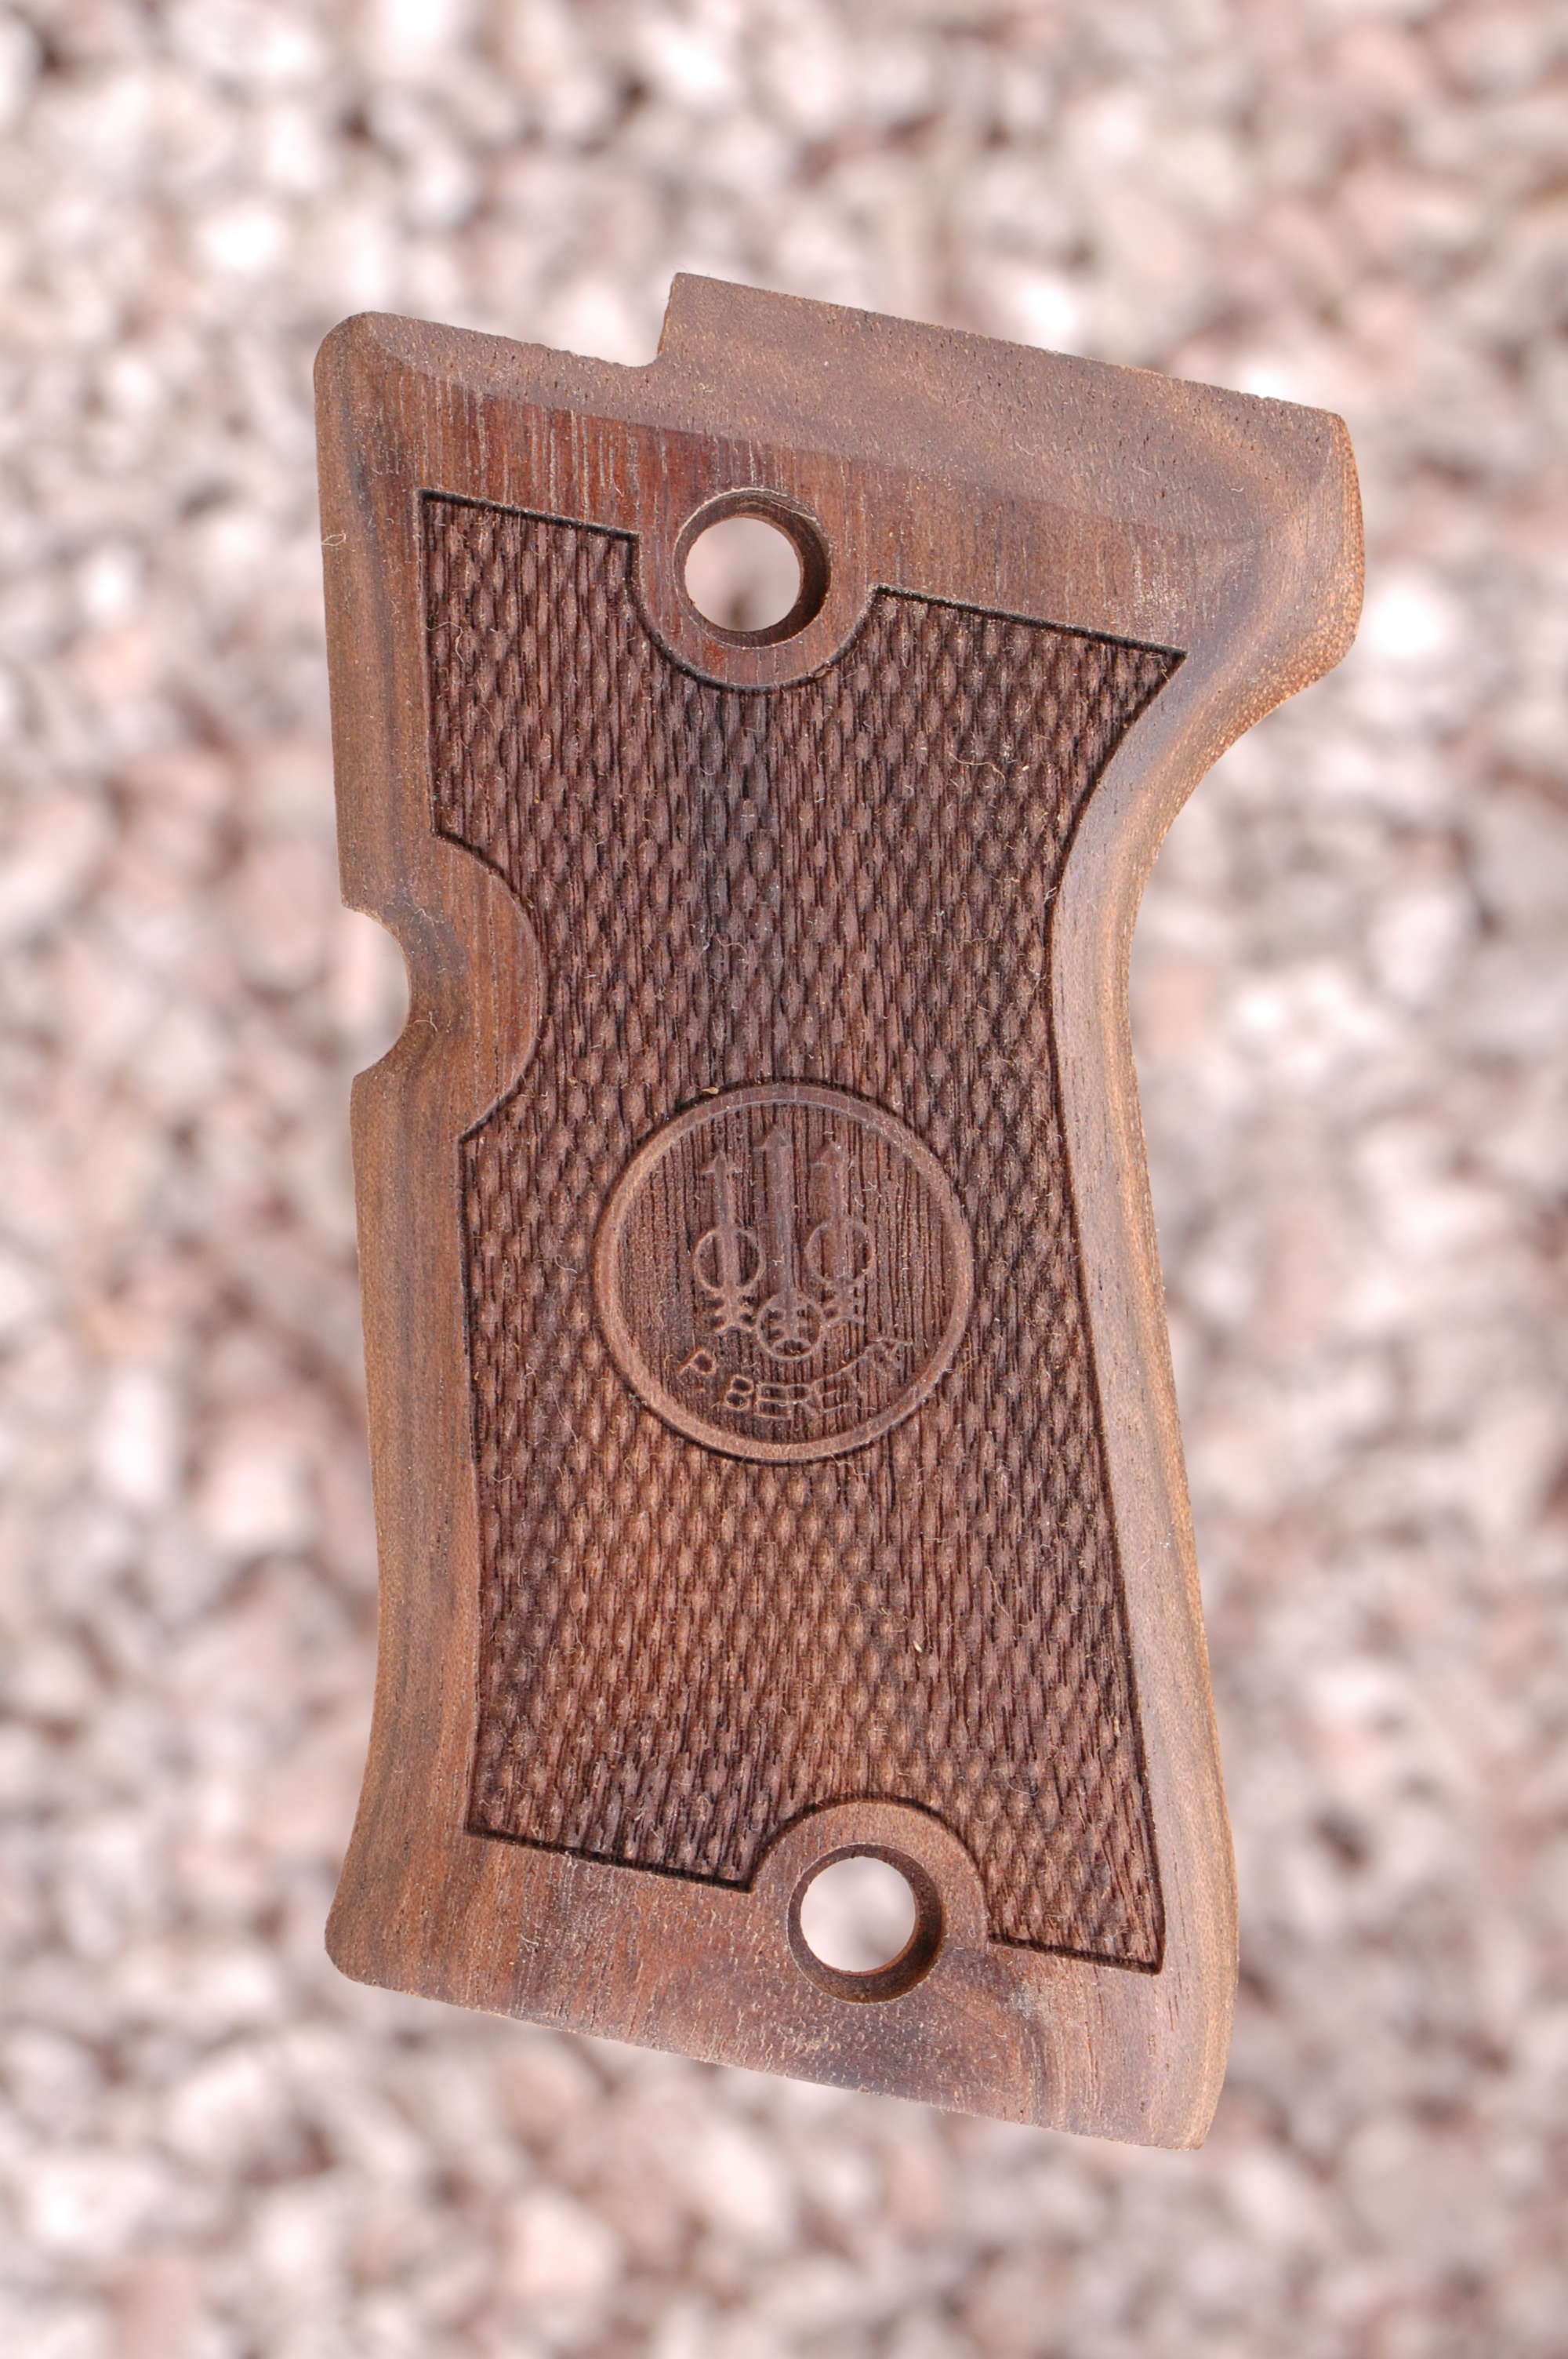 BERETTA 92 COMPACT TYPE M GRIPS - full size